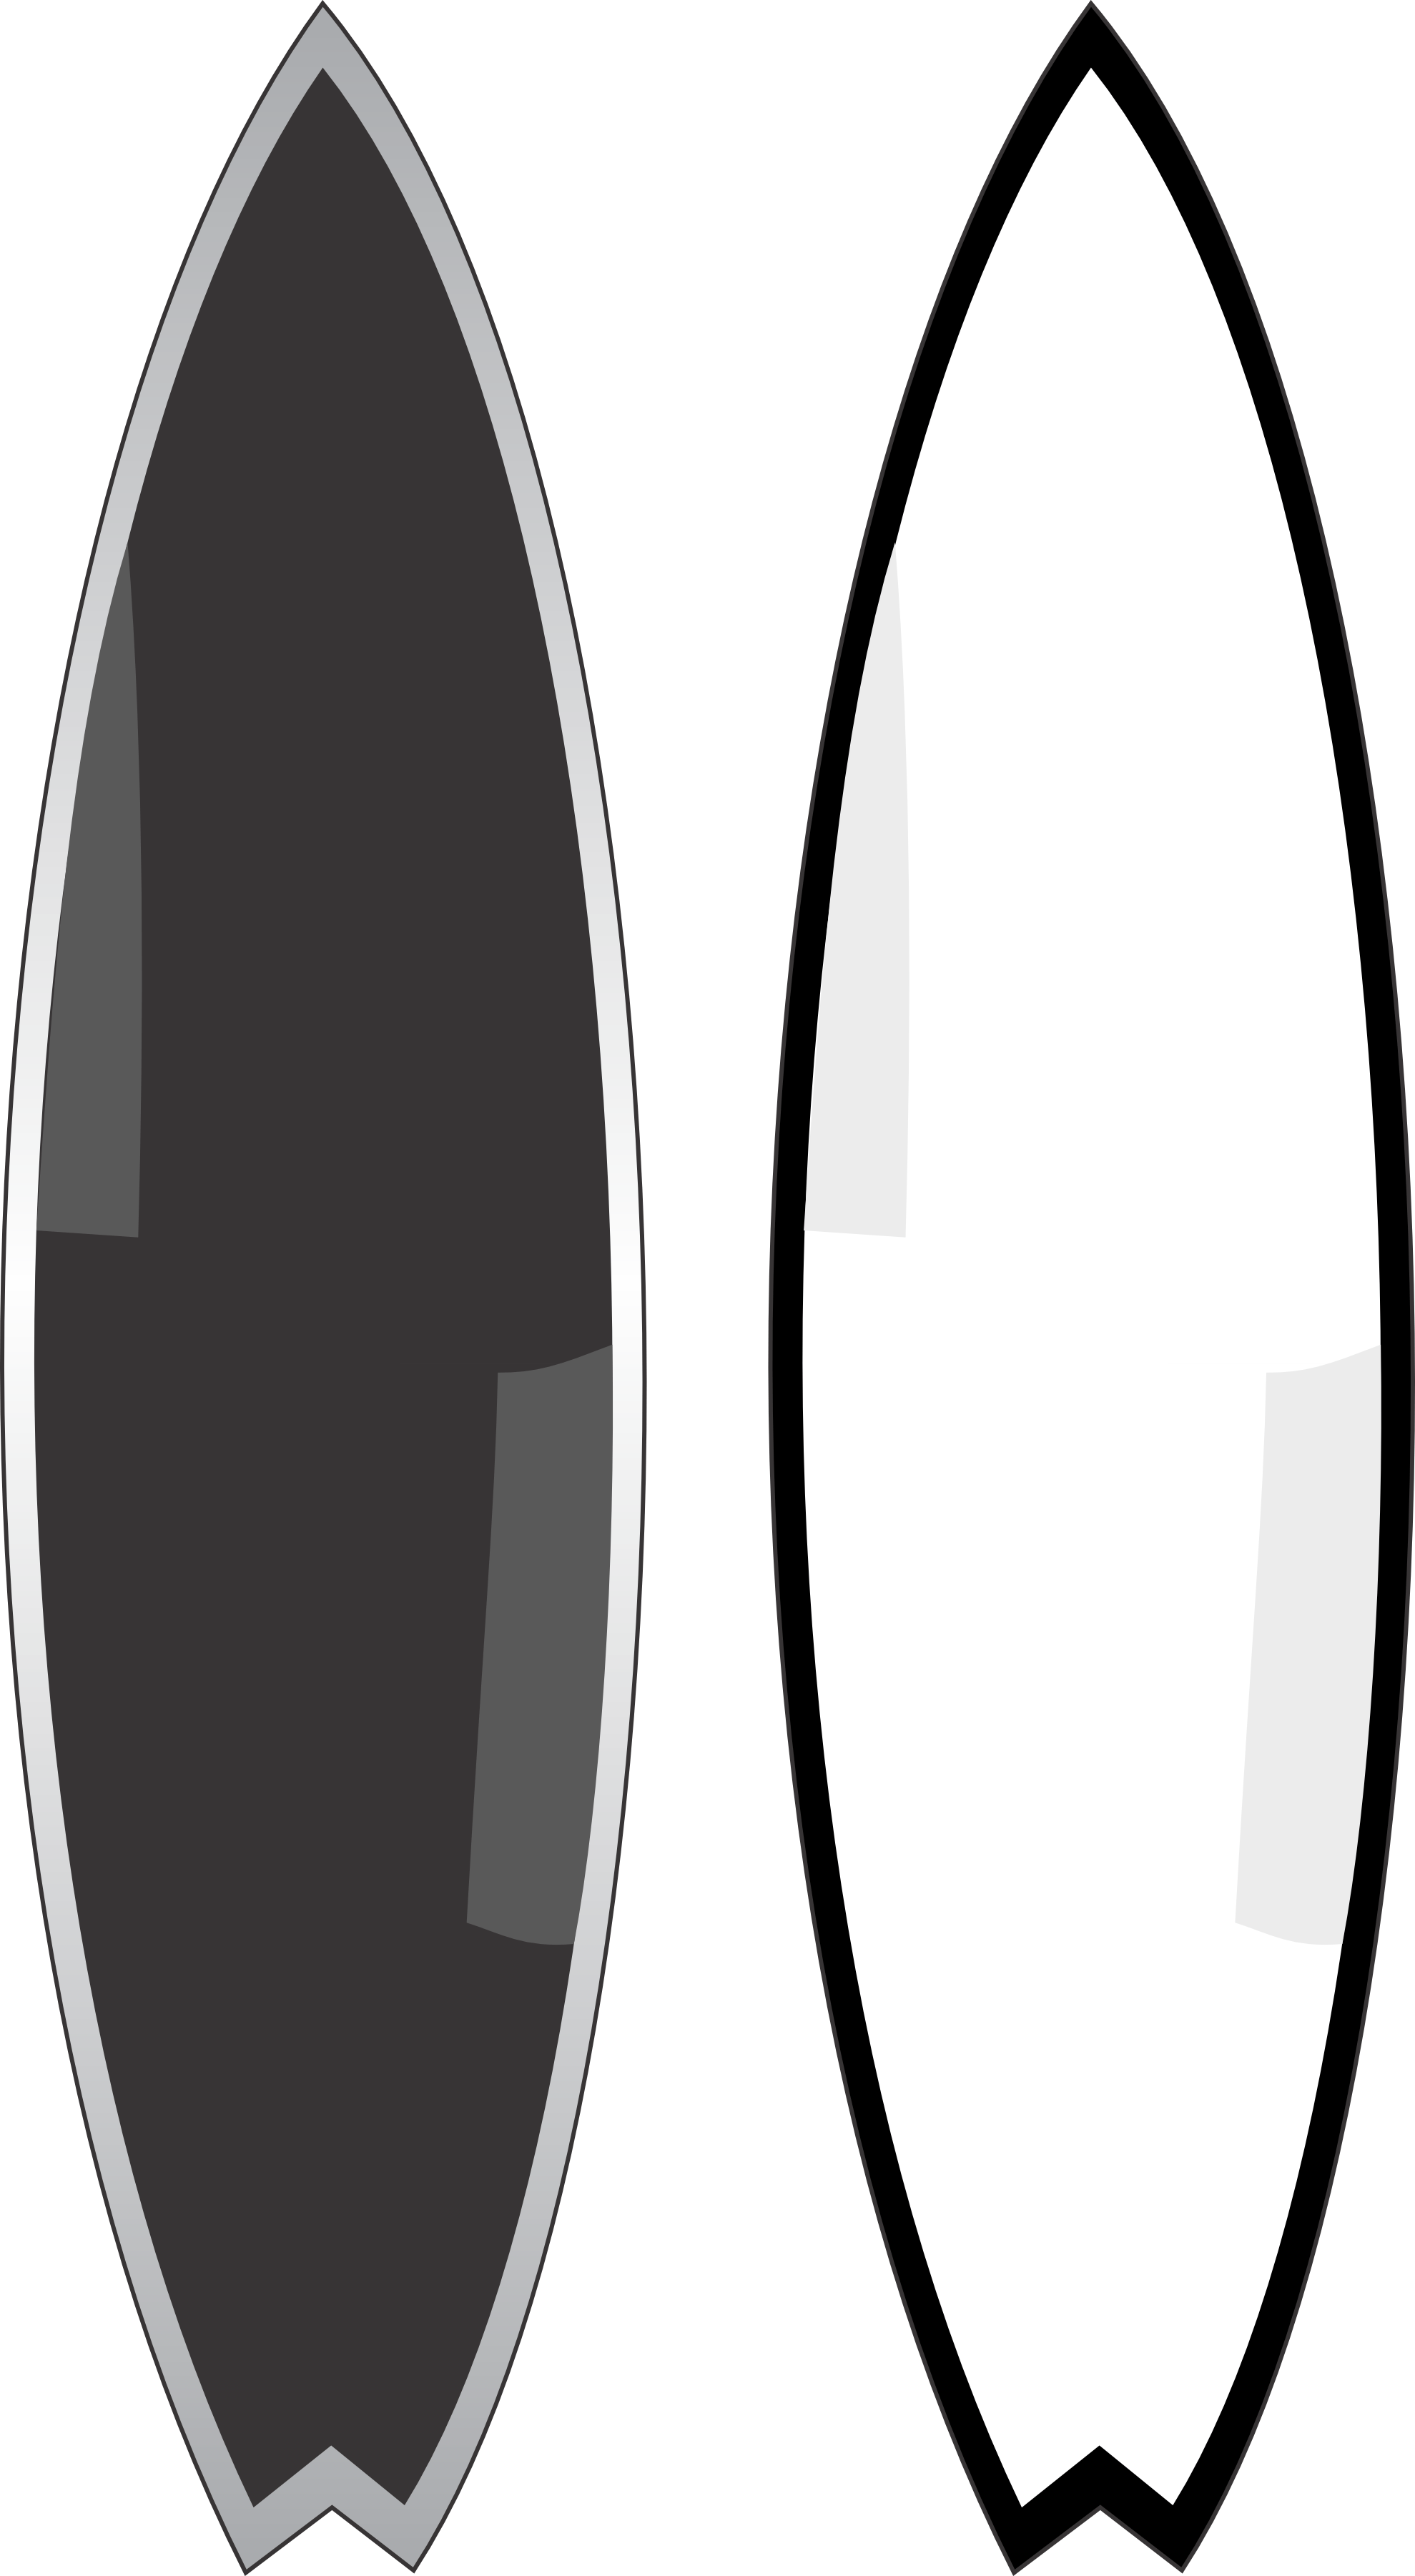 Outline of surfboard clipart clip freeuse stock Surfboard Template. surfboard black and white clipart clipart kid ... clip freeuse stock